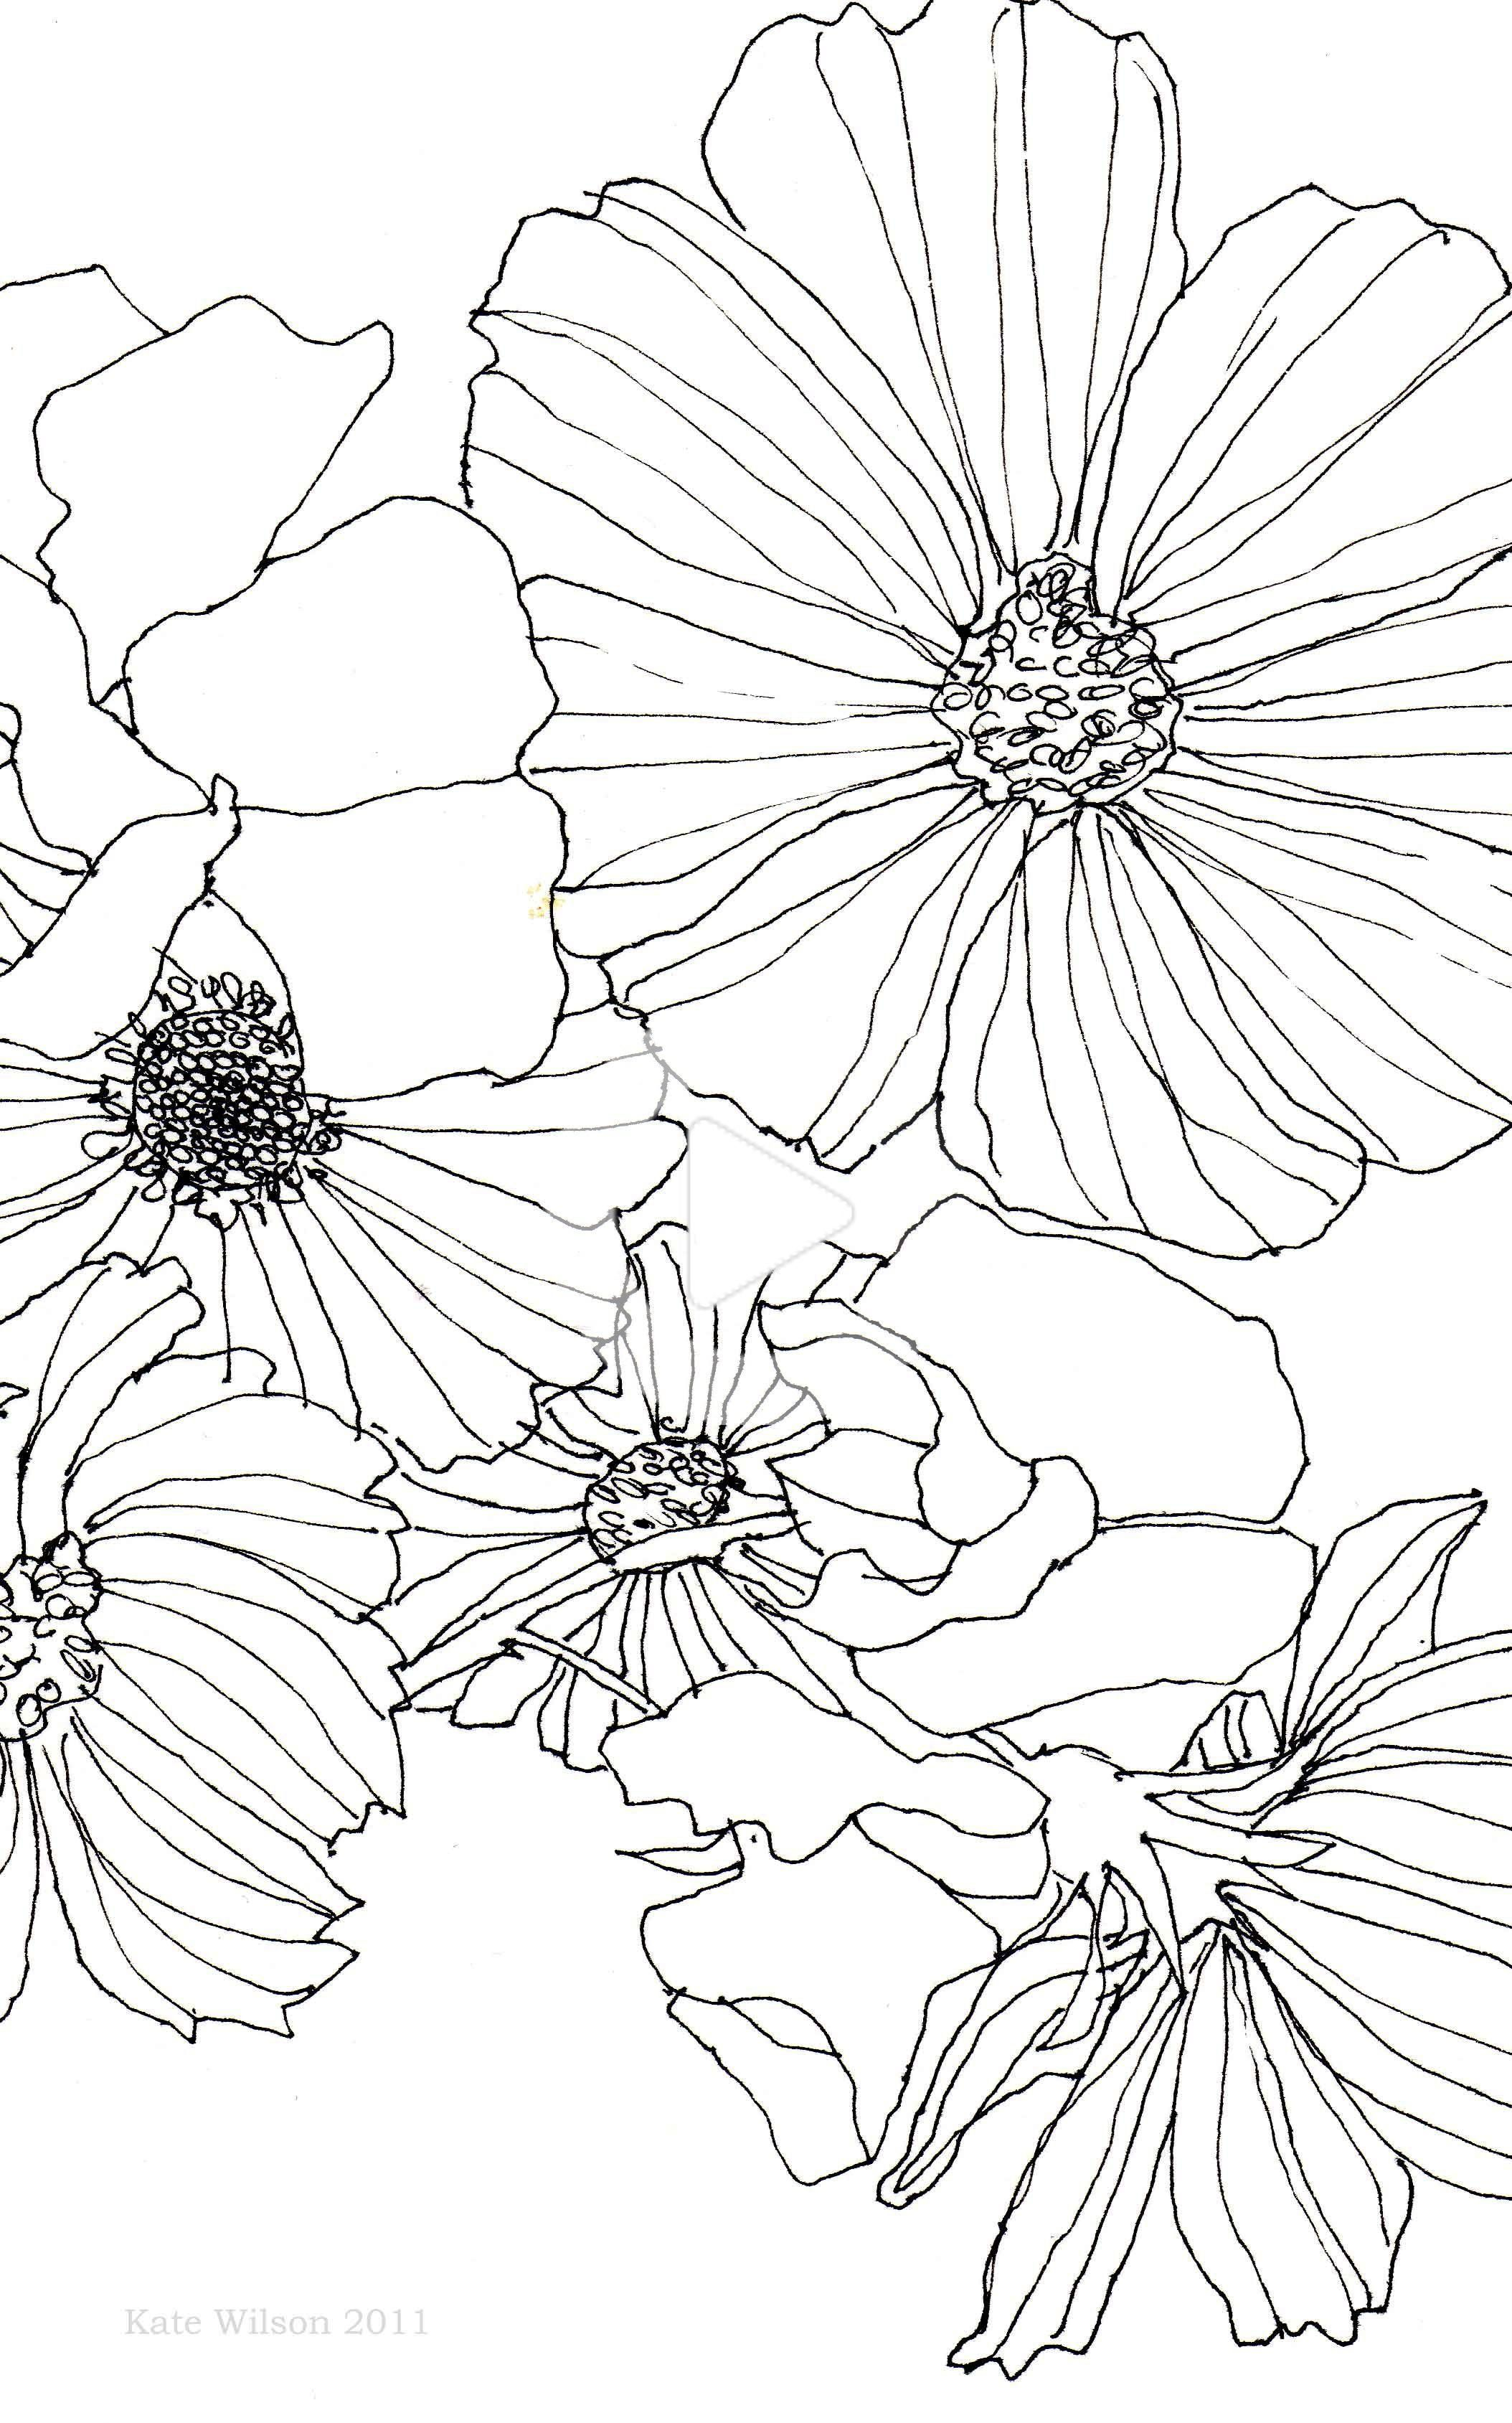 Cosmos And Sweet Pea In 2020 Floral Drawing Flower Drawing Flower Sketches